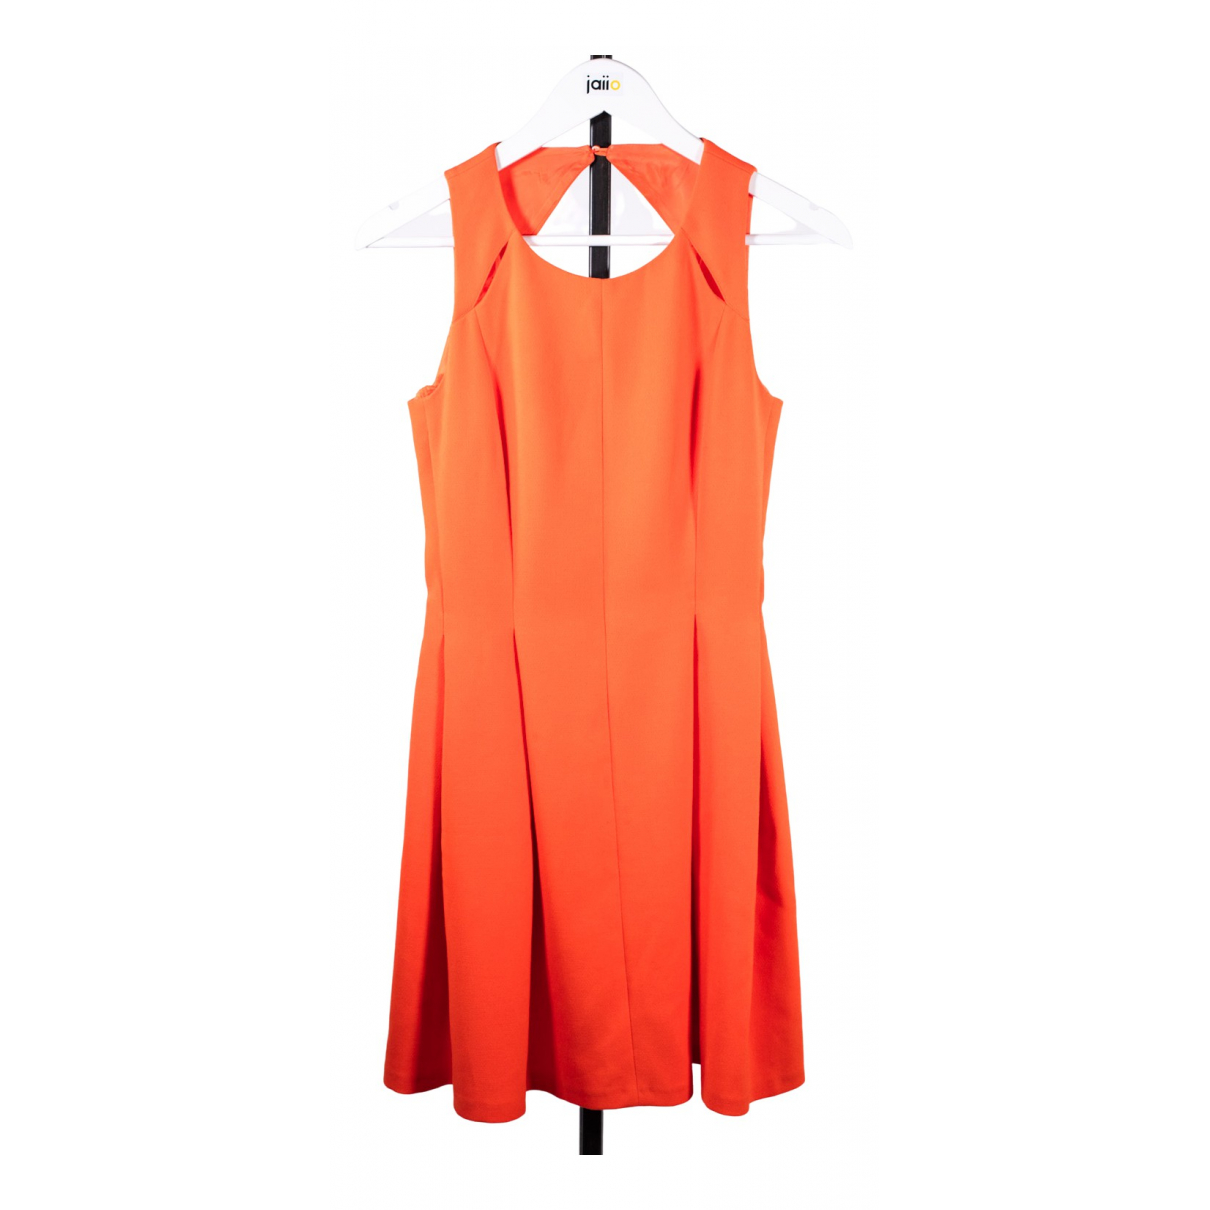 Comptoir Des Cotonniers N Orange dress for Women 36 FR